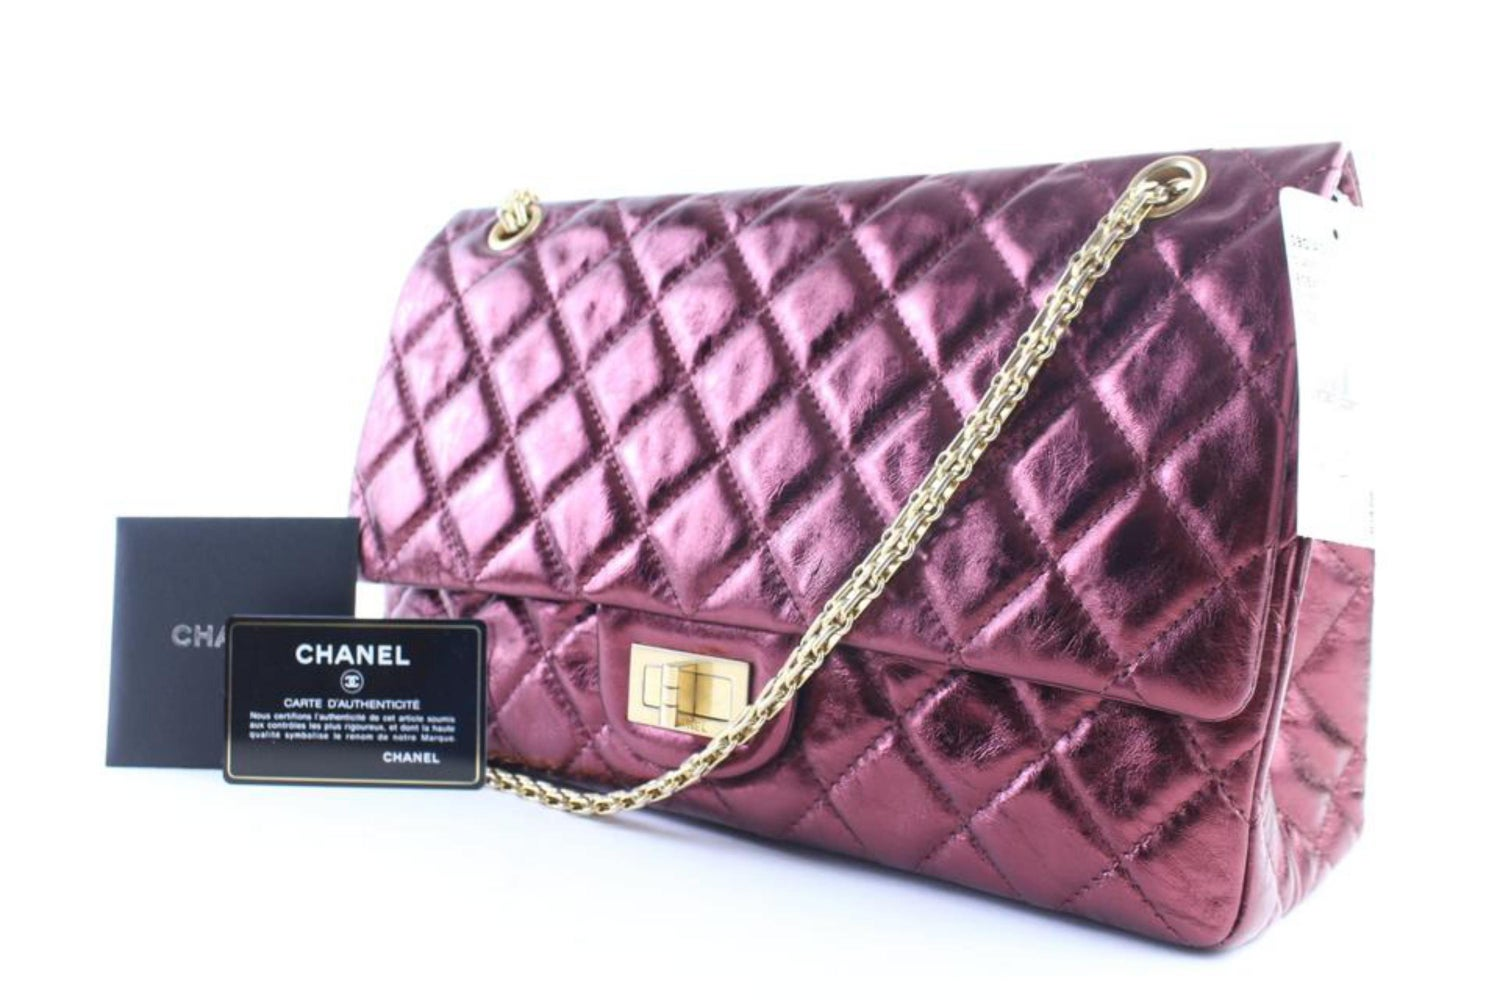 683a3ea89cf3 Chanel 2.55 Reissue 227 Flap 11cr0522 Metallic Burgundy Quilted Shoulder Bag  For Sale at 1stdibs